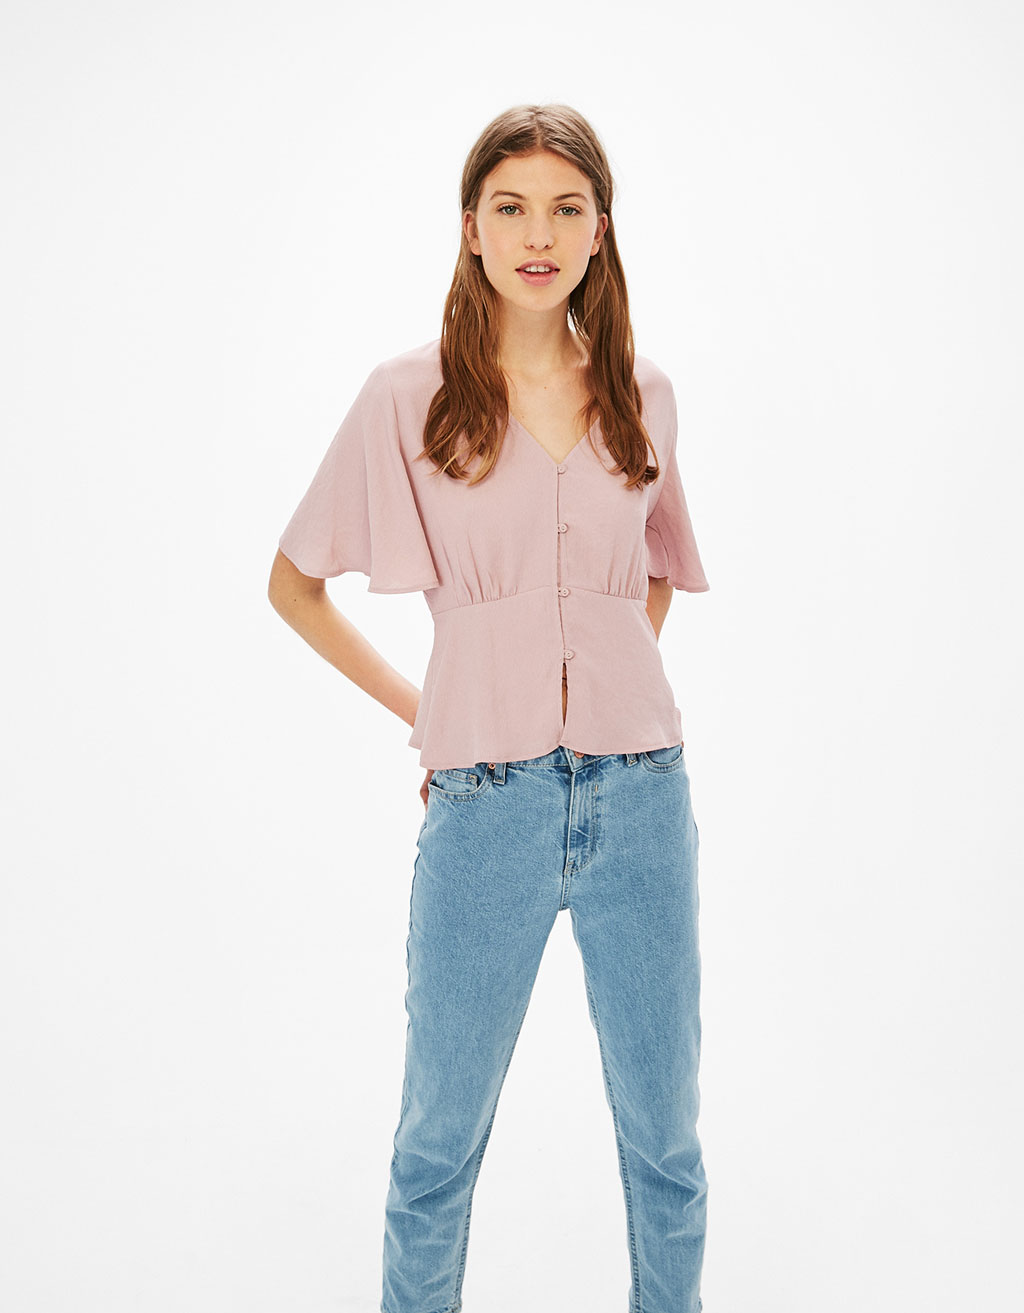 Flowing buttoned blouse